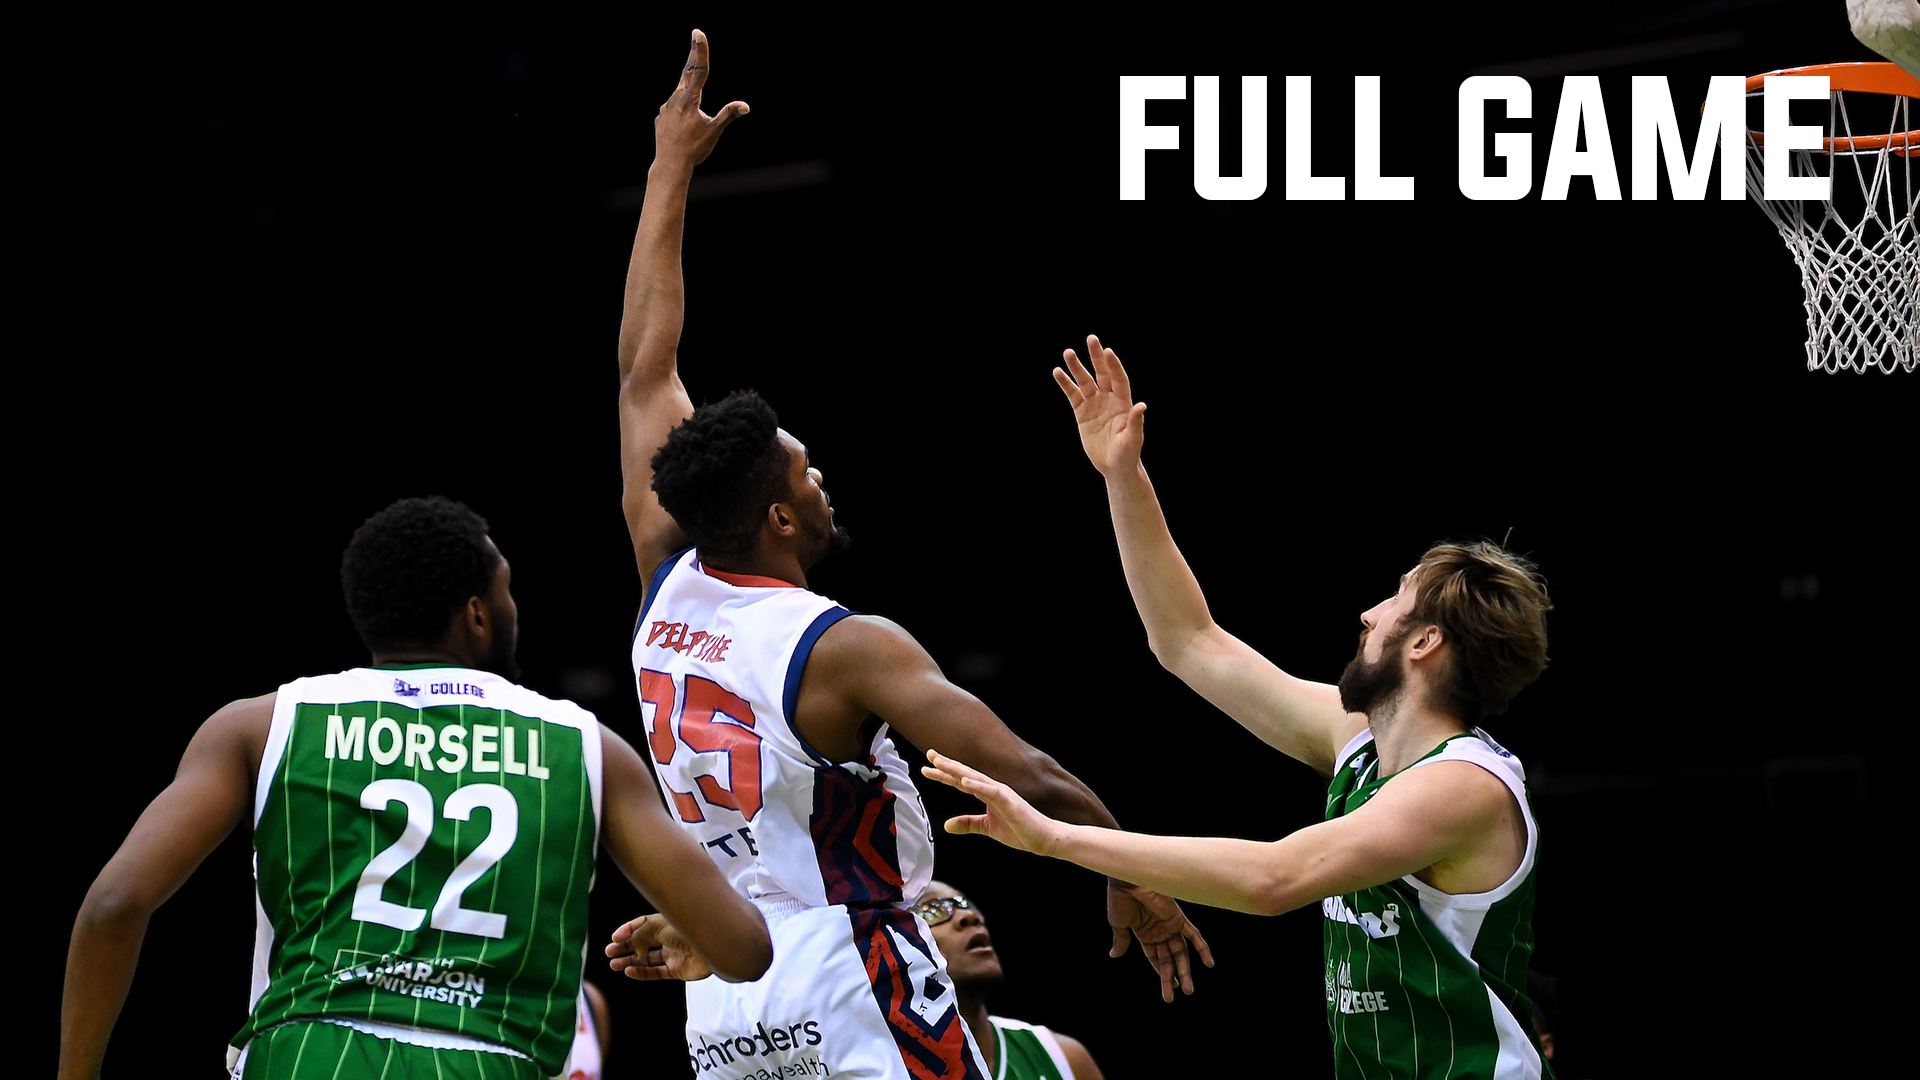 Plymouth Raiders 74-65 Bristol Flyers